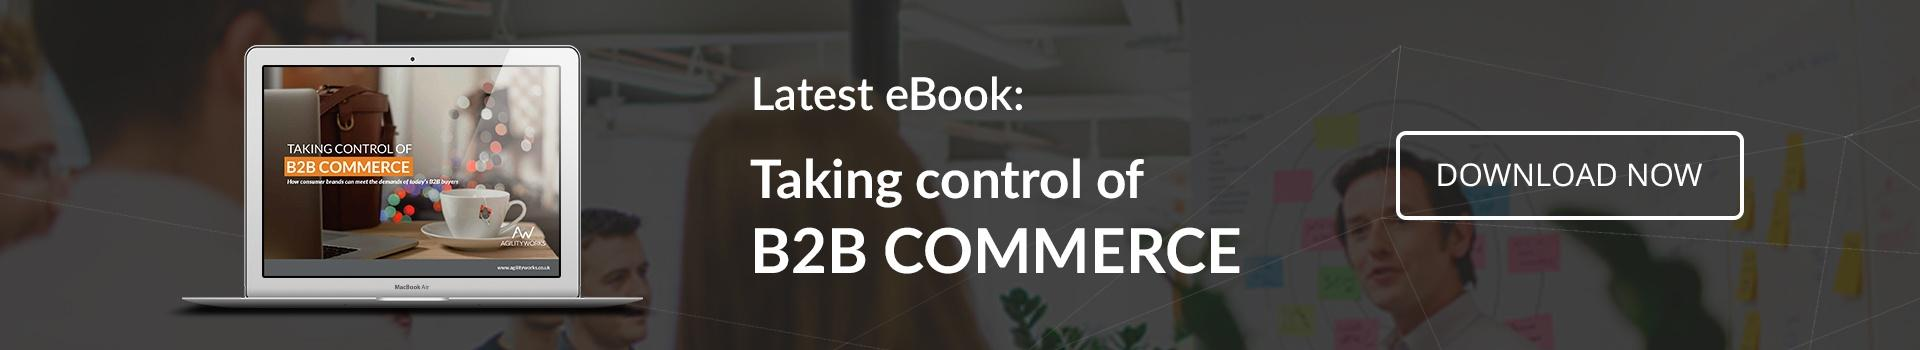 B2B Commerce eBook download